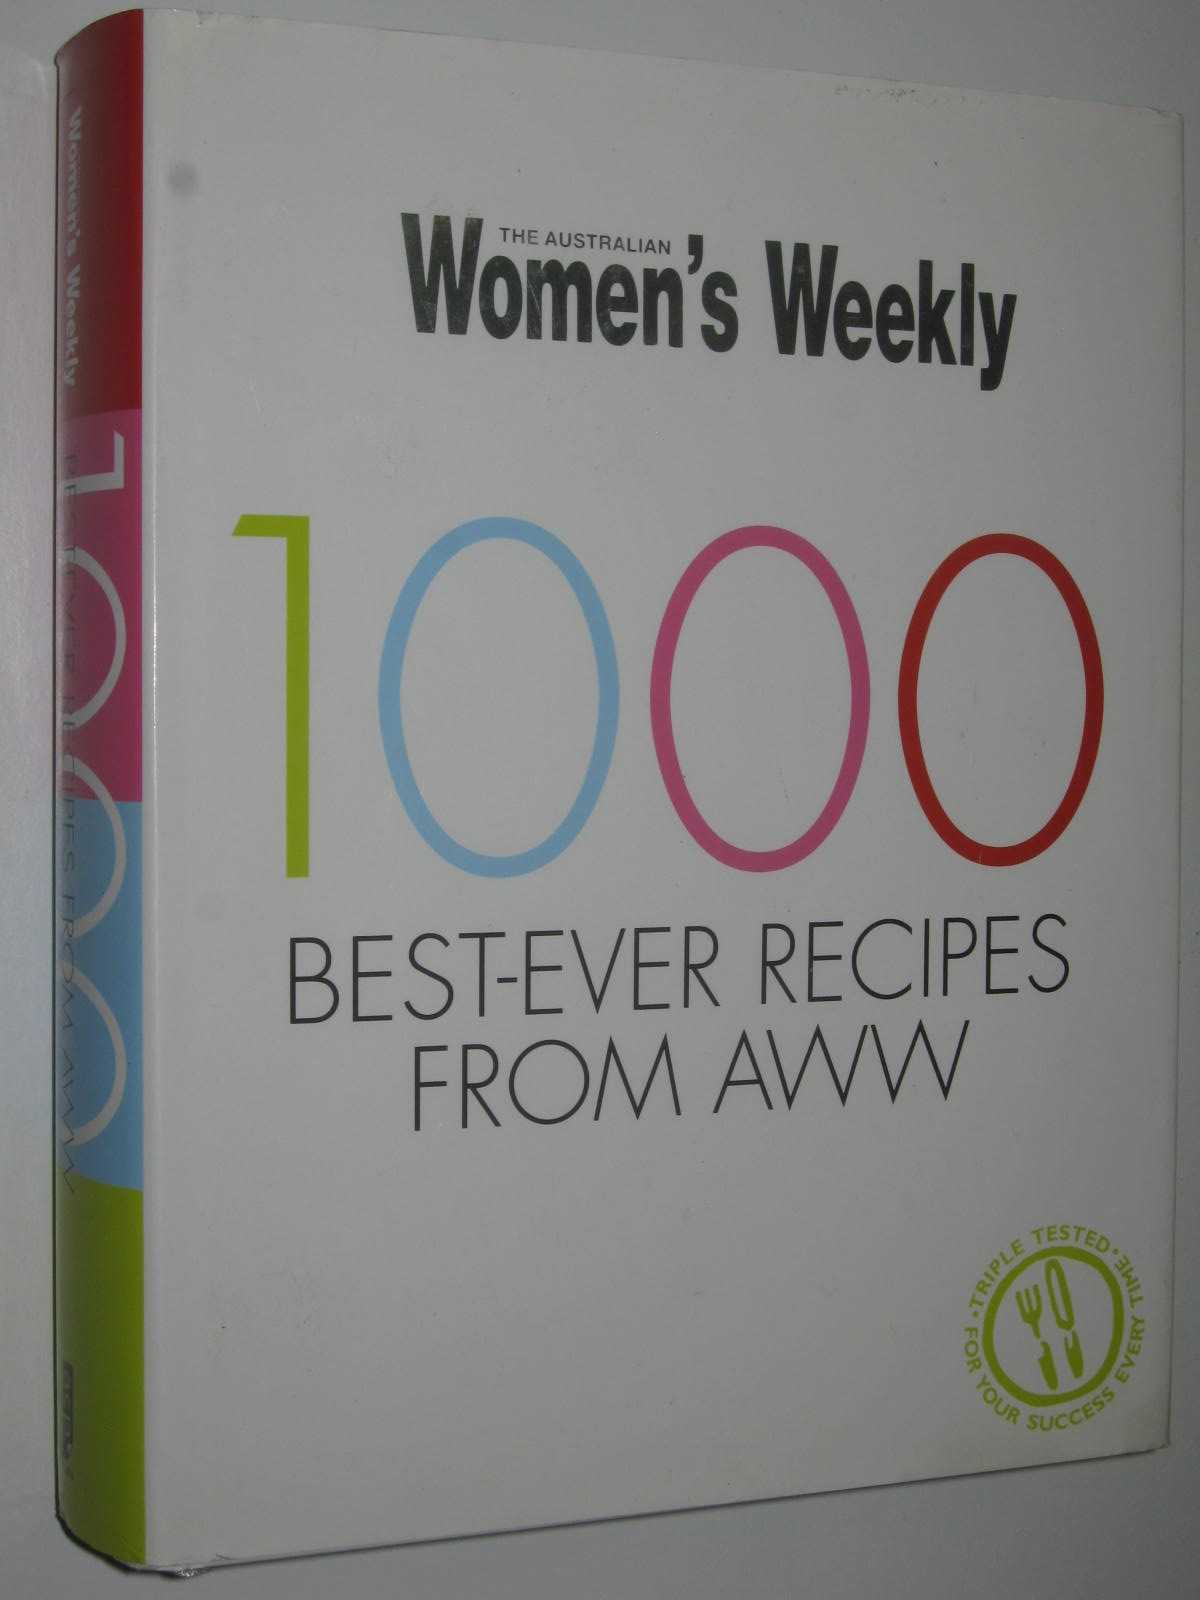 Image for 1000 Best-Ever Recipes from AWW